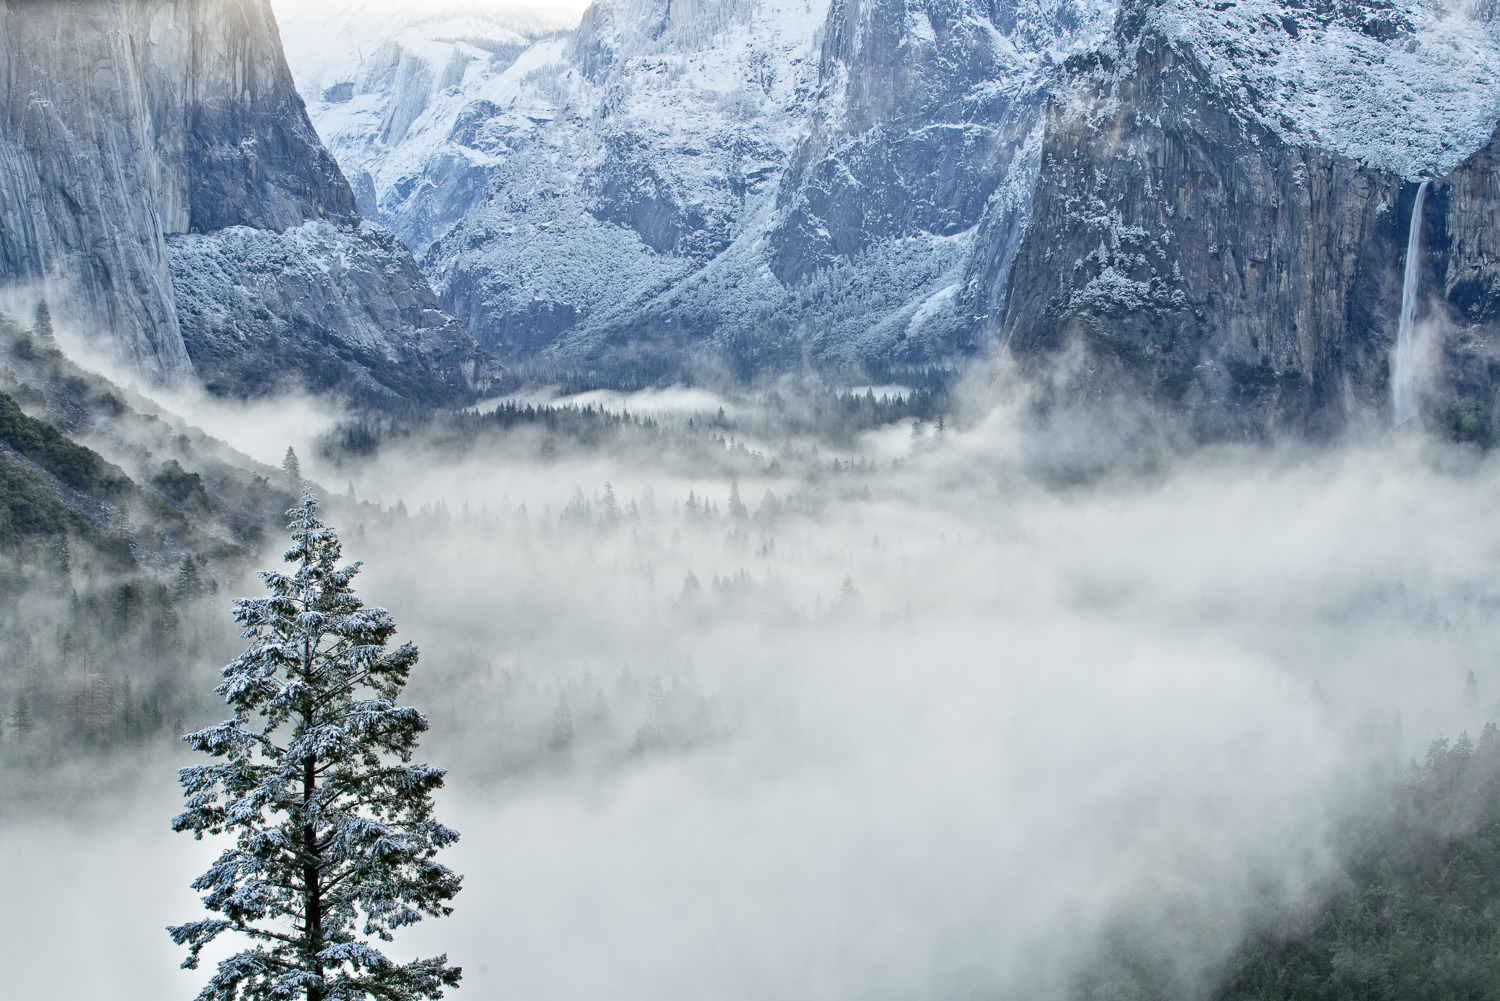 A layer of fog fills Yosemite Valley after a recent snow storm